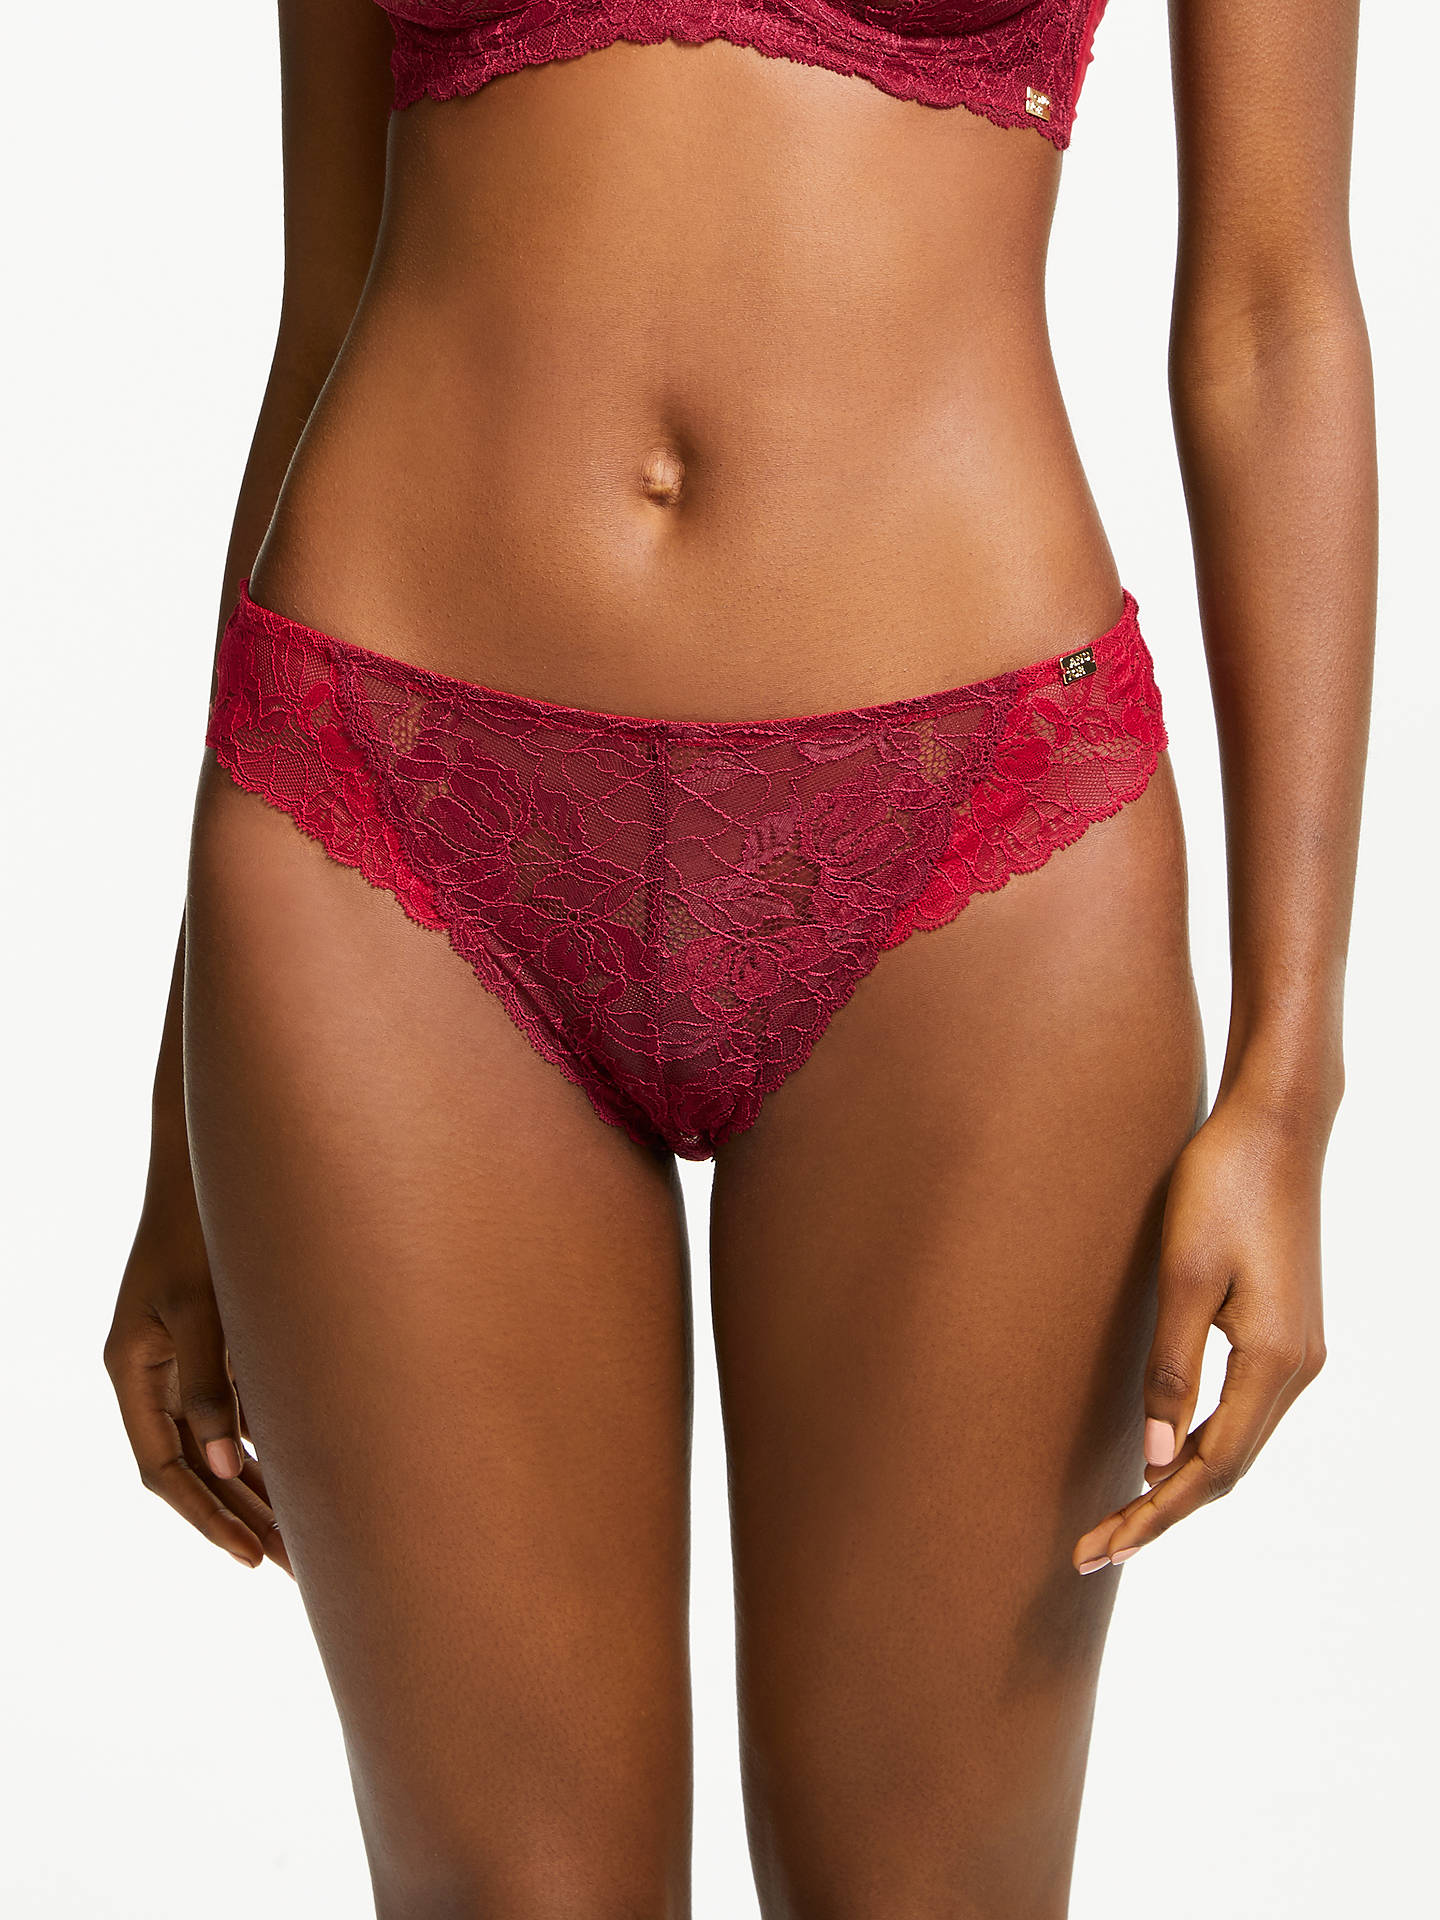 BuyAND/OR Marni Brazilian Briefs, Red, 16 Online at johnlewis.com